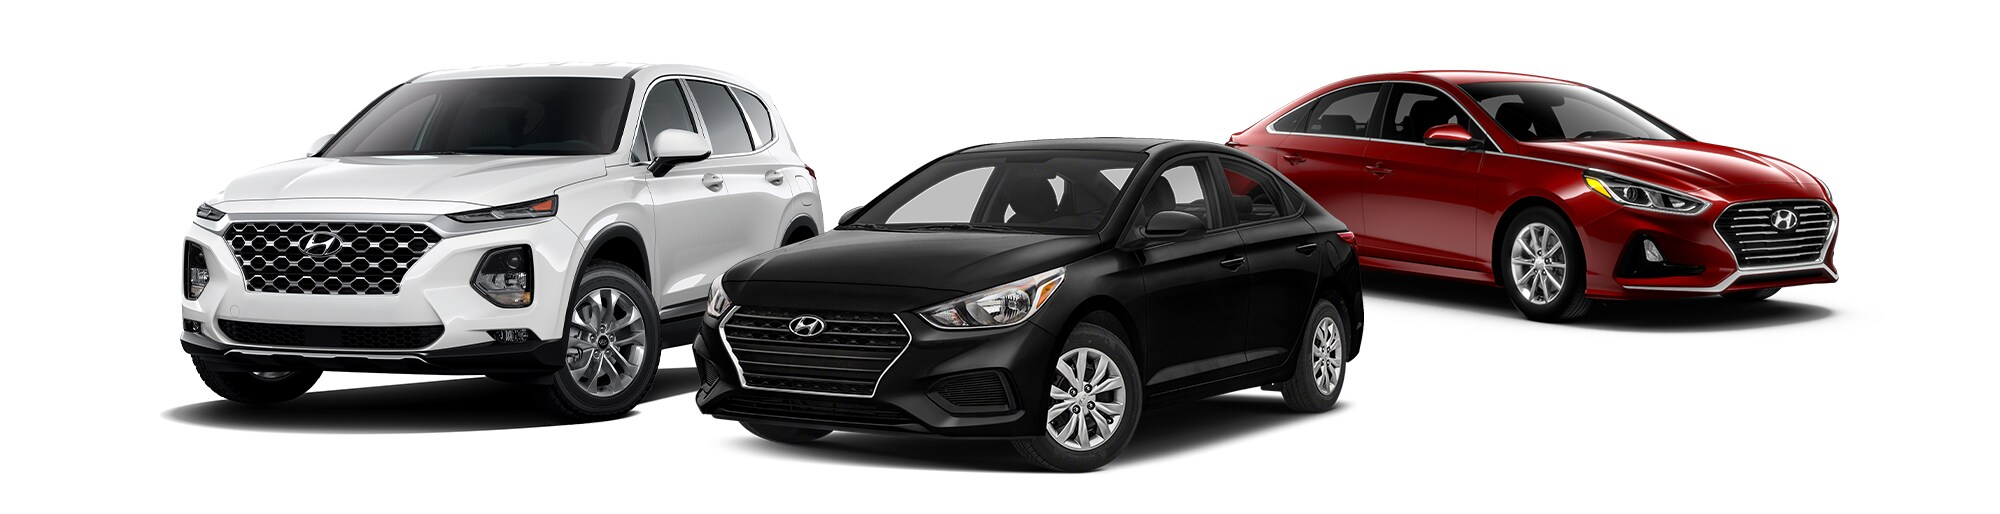 New Vehicle Specials In Austin Tx At South Point Hyundai